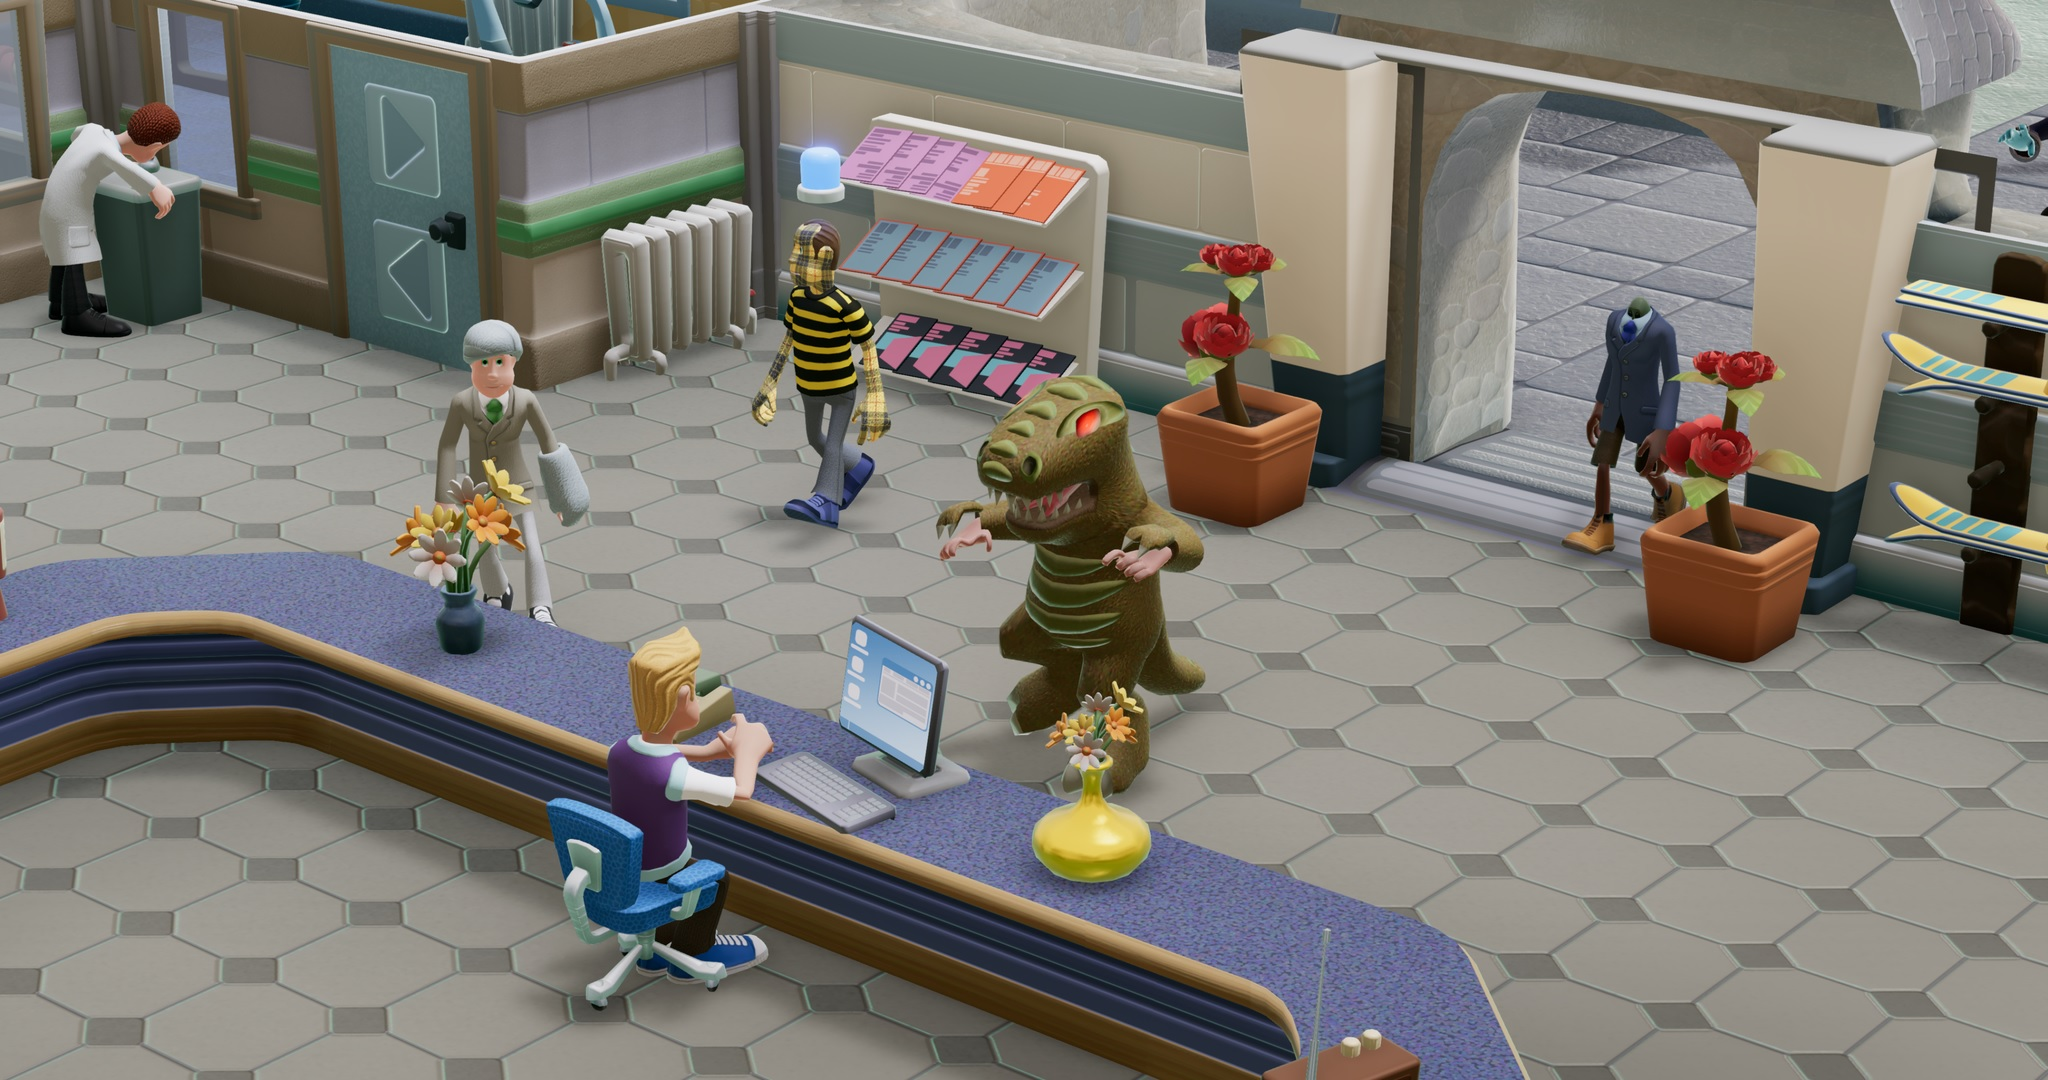 Bigfoot is real in Two Point Hospital's new DLC screenshot